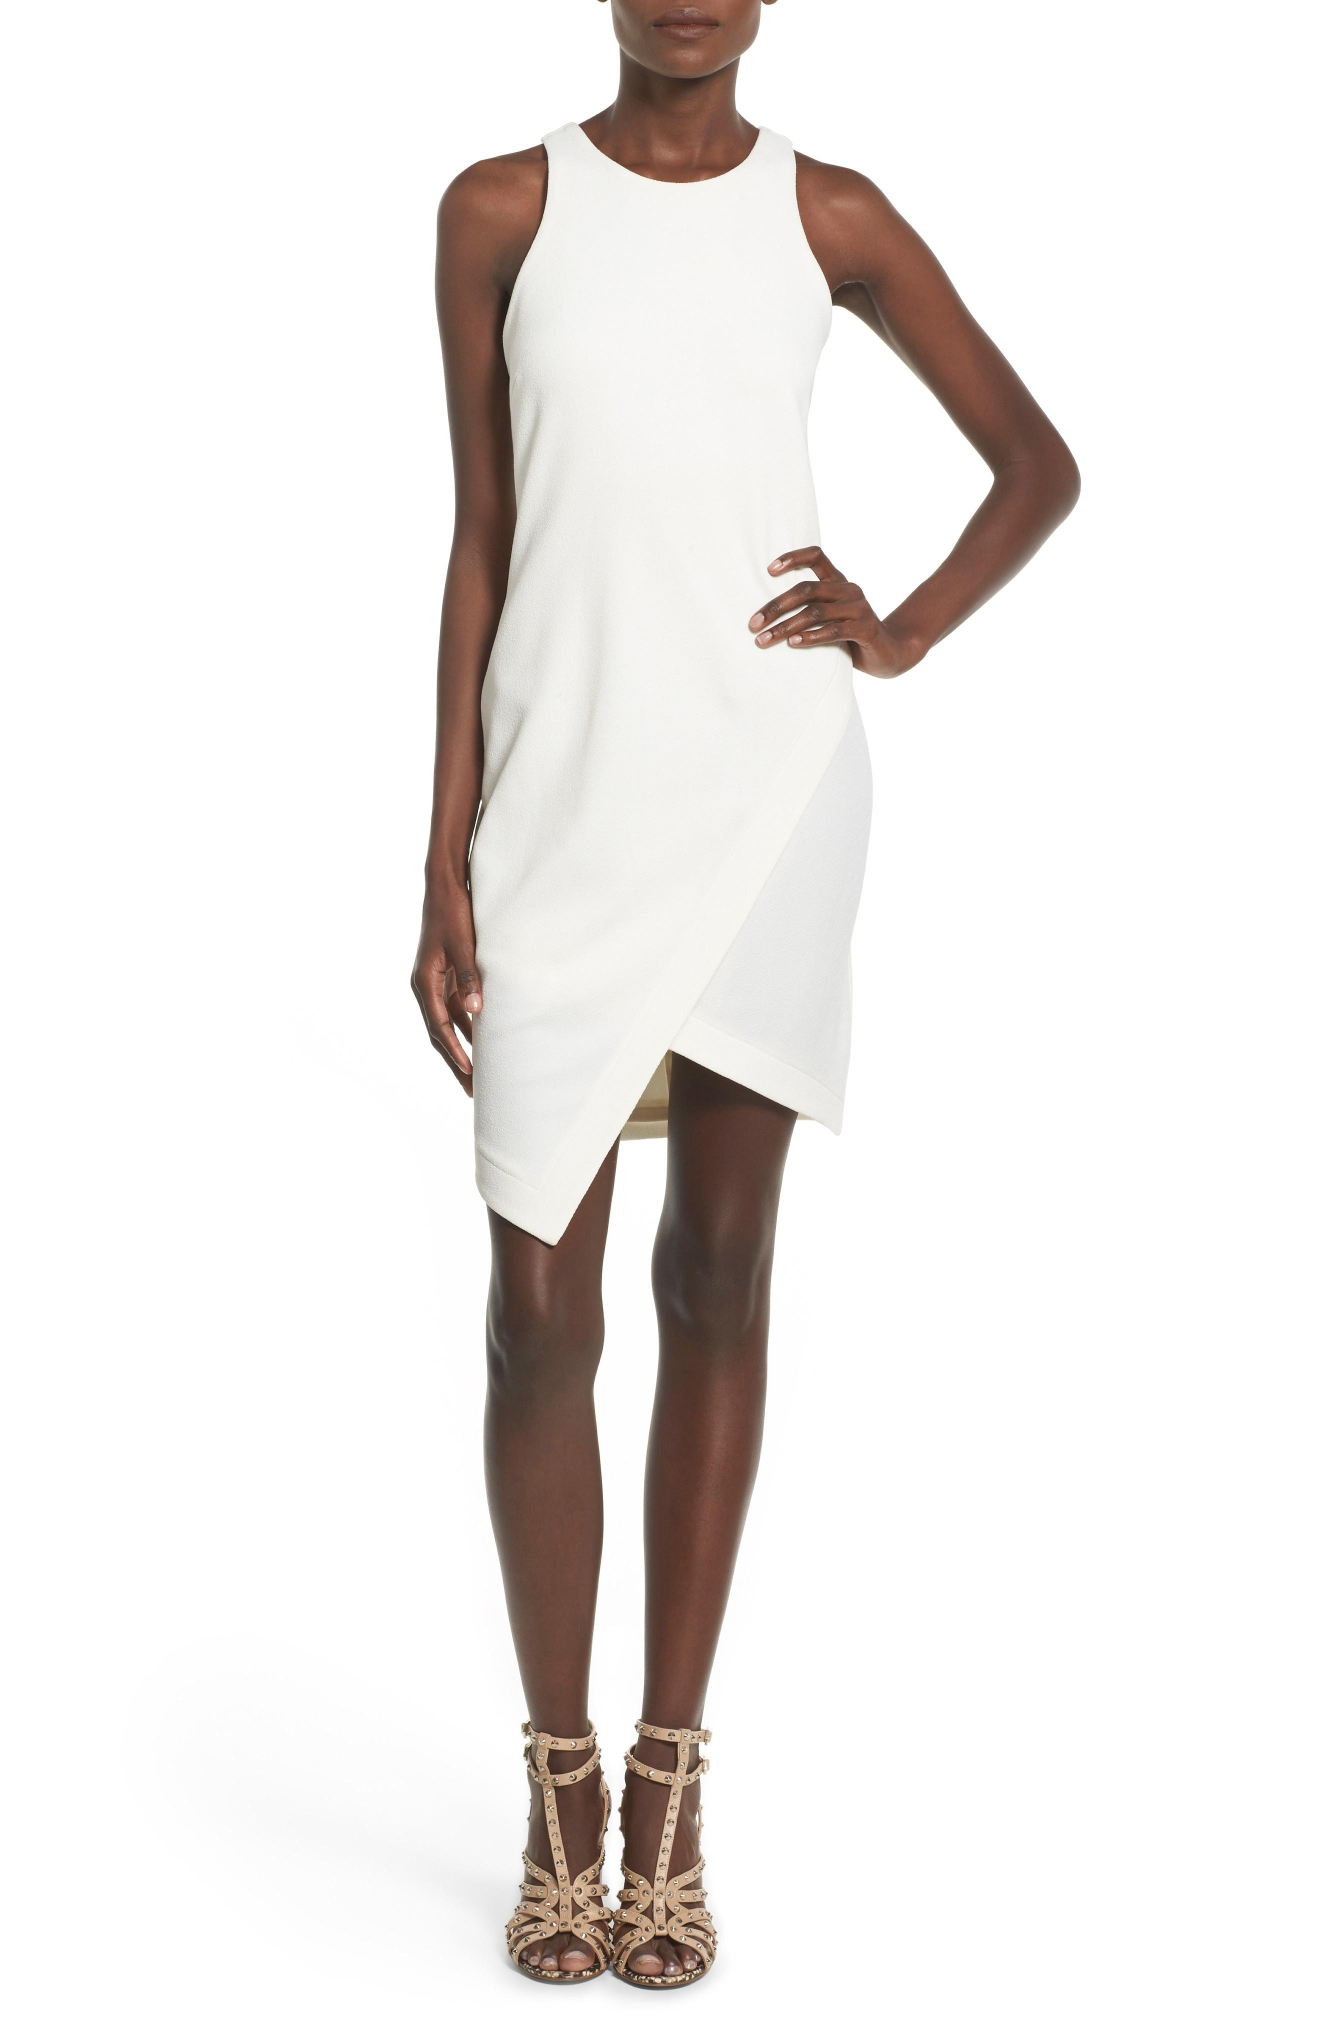 Leith Stretch Crepe Tank Dress, $68,  Nordstrom.com (Image: Courtesy Nordstrom)